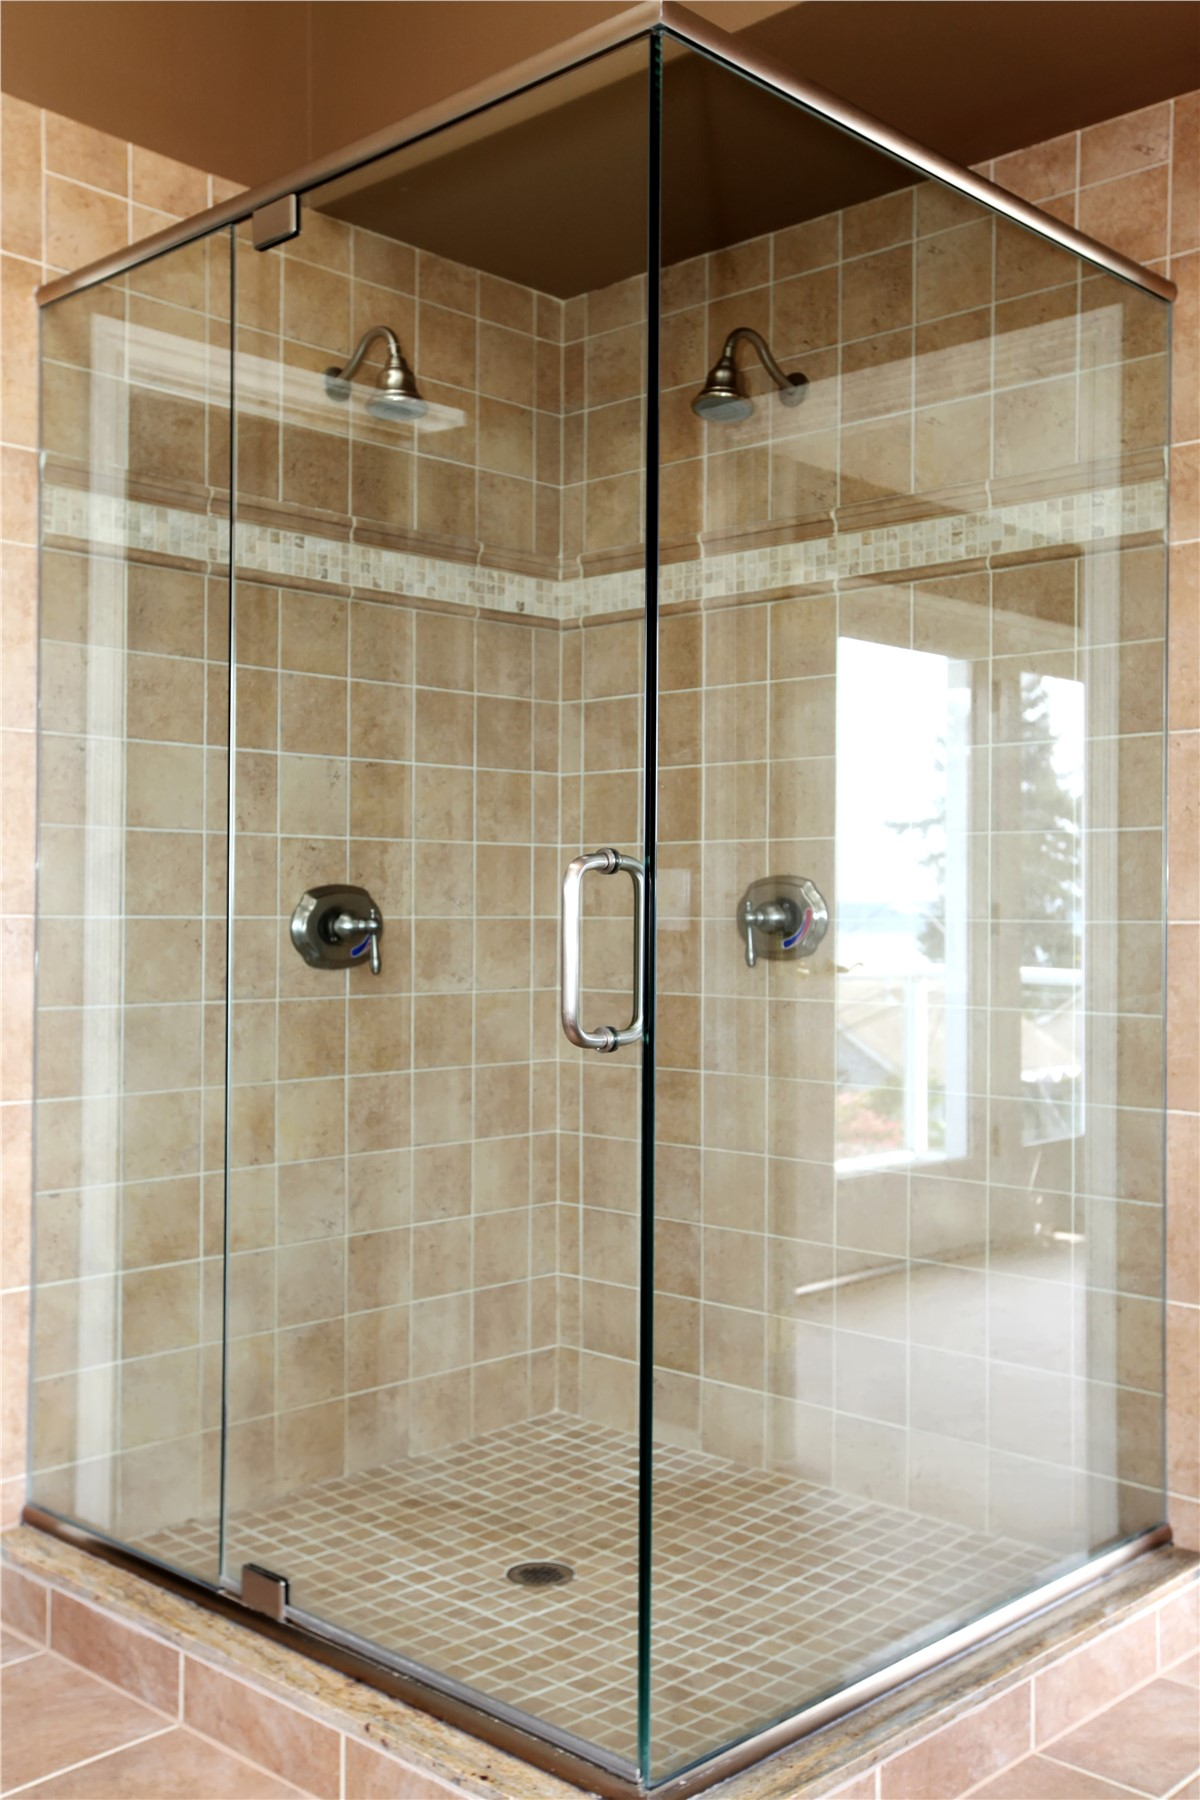 Replacement showers pittsburgh bathroom remodelers - Pittsburgh bathroom remodeling contractors ...